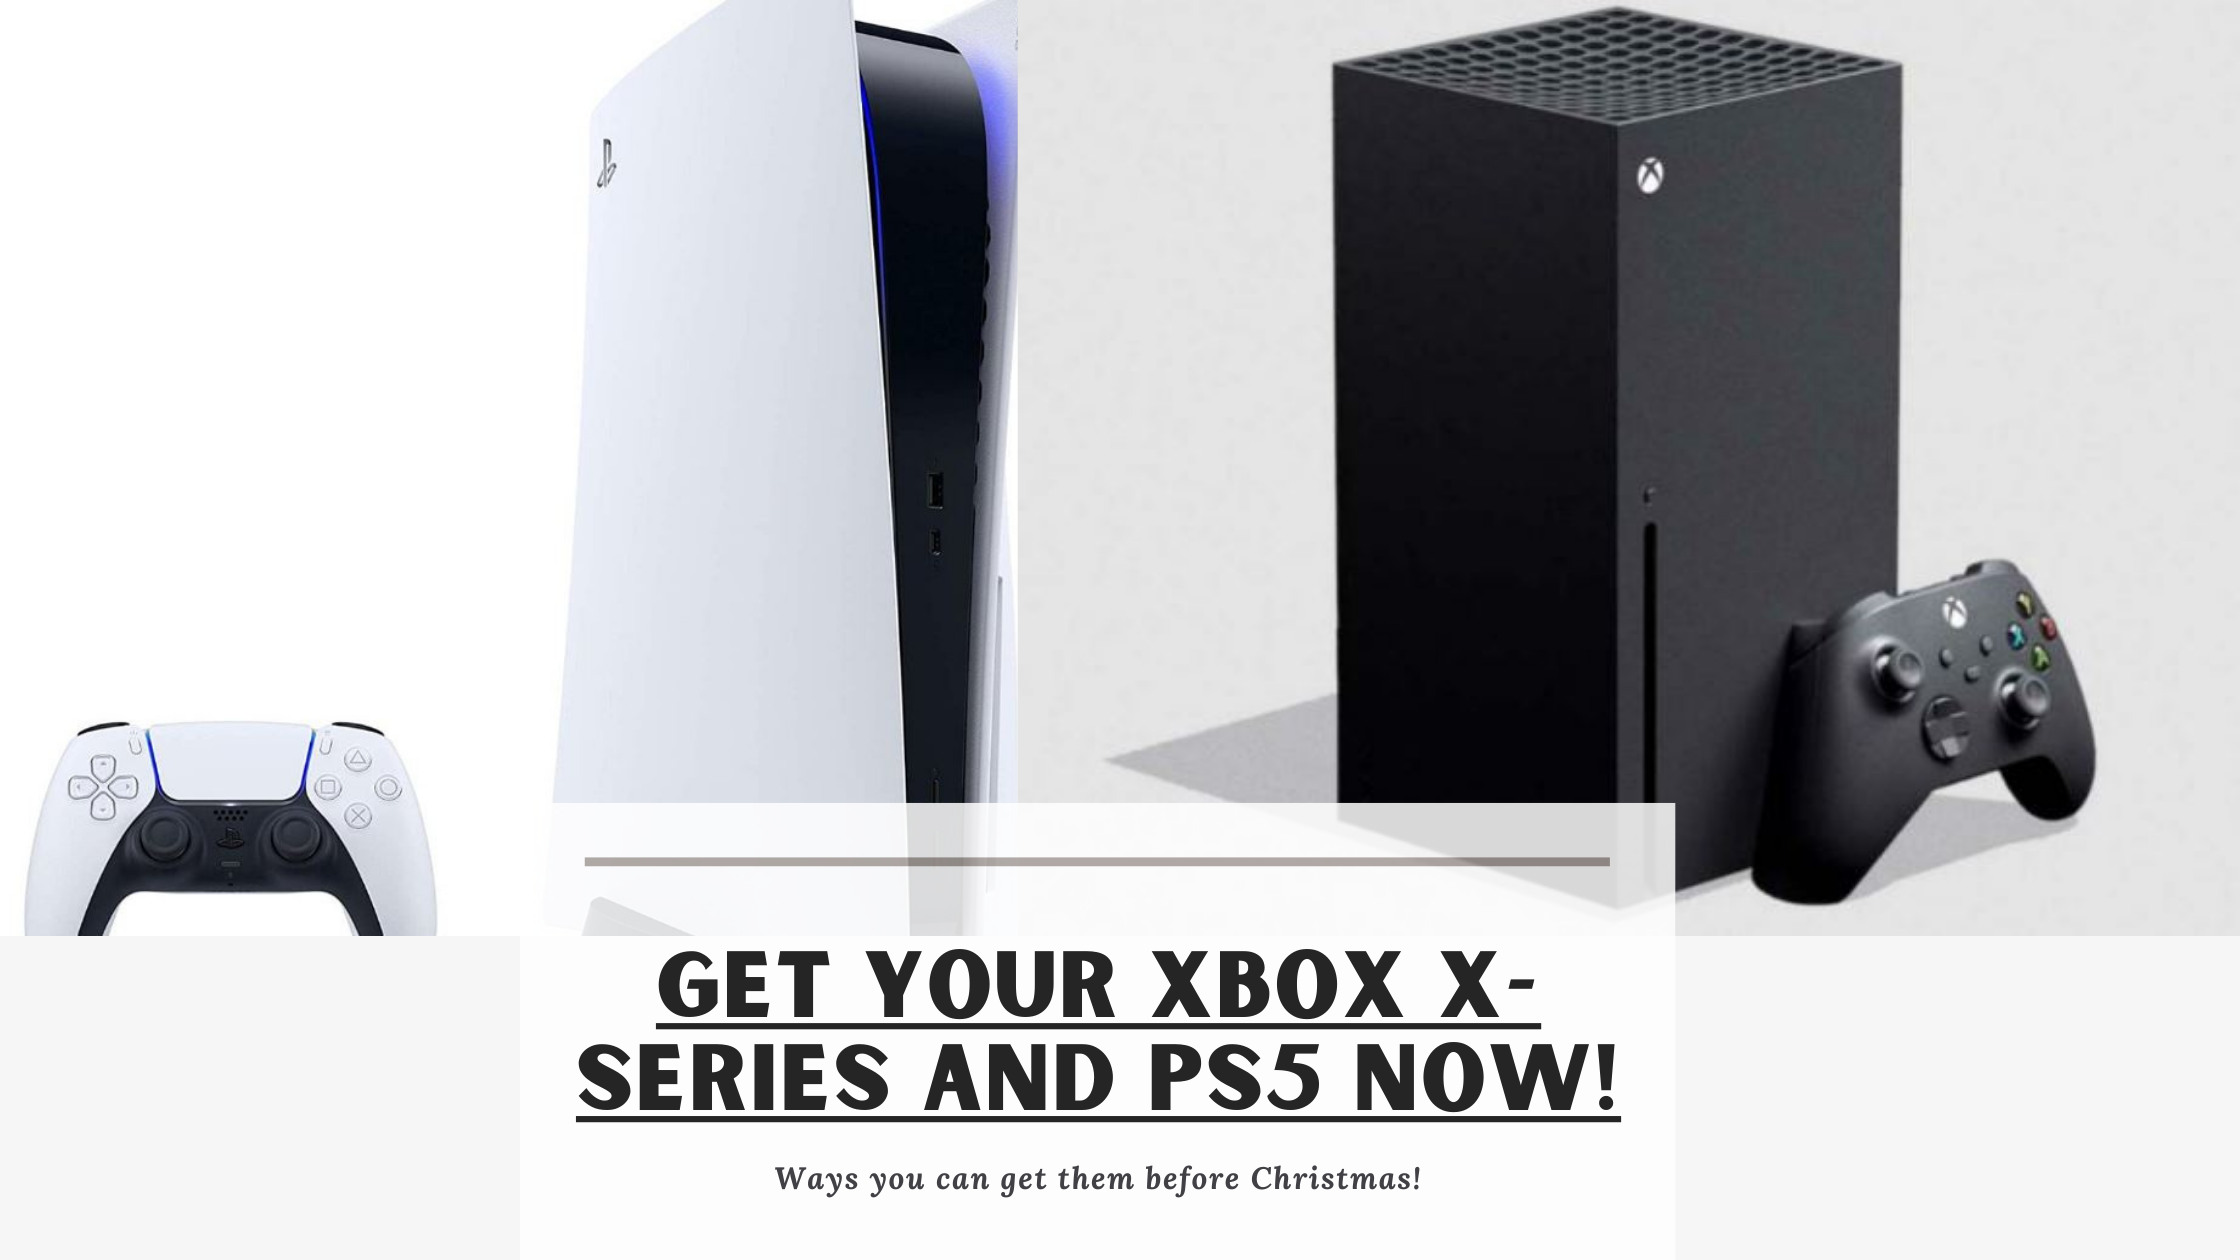 Find an Xbox Series X/S, PS5 Playstation 5!!!!